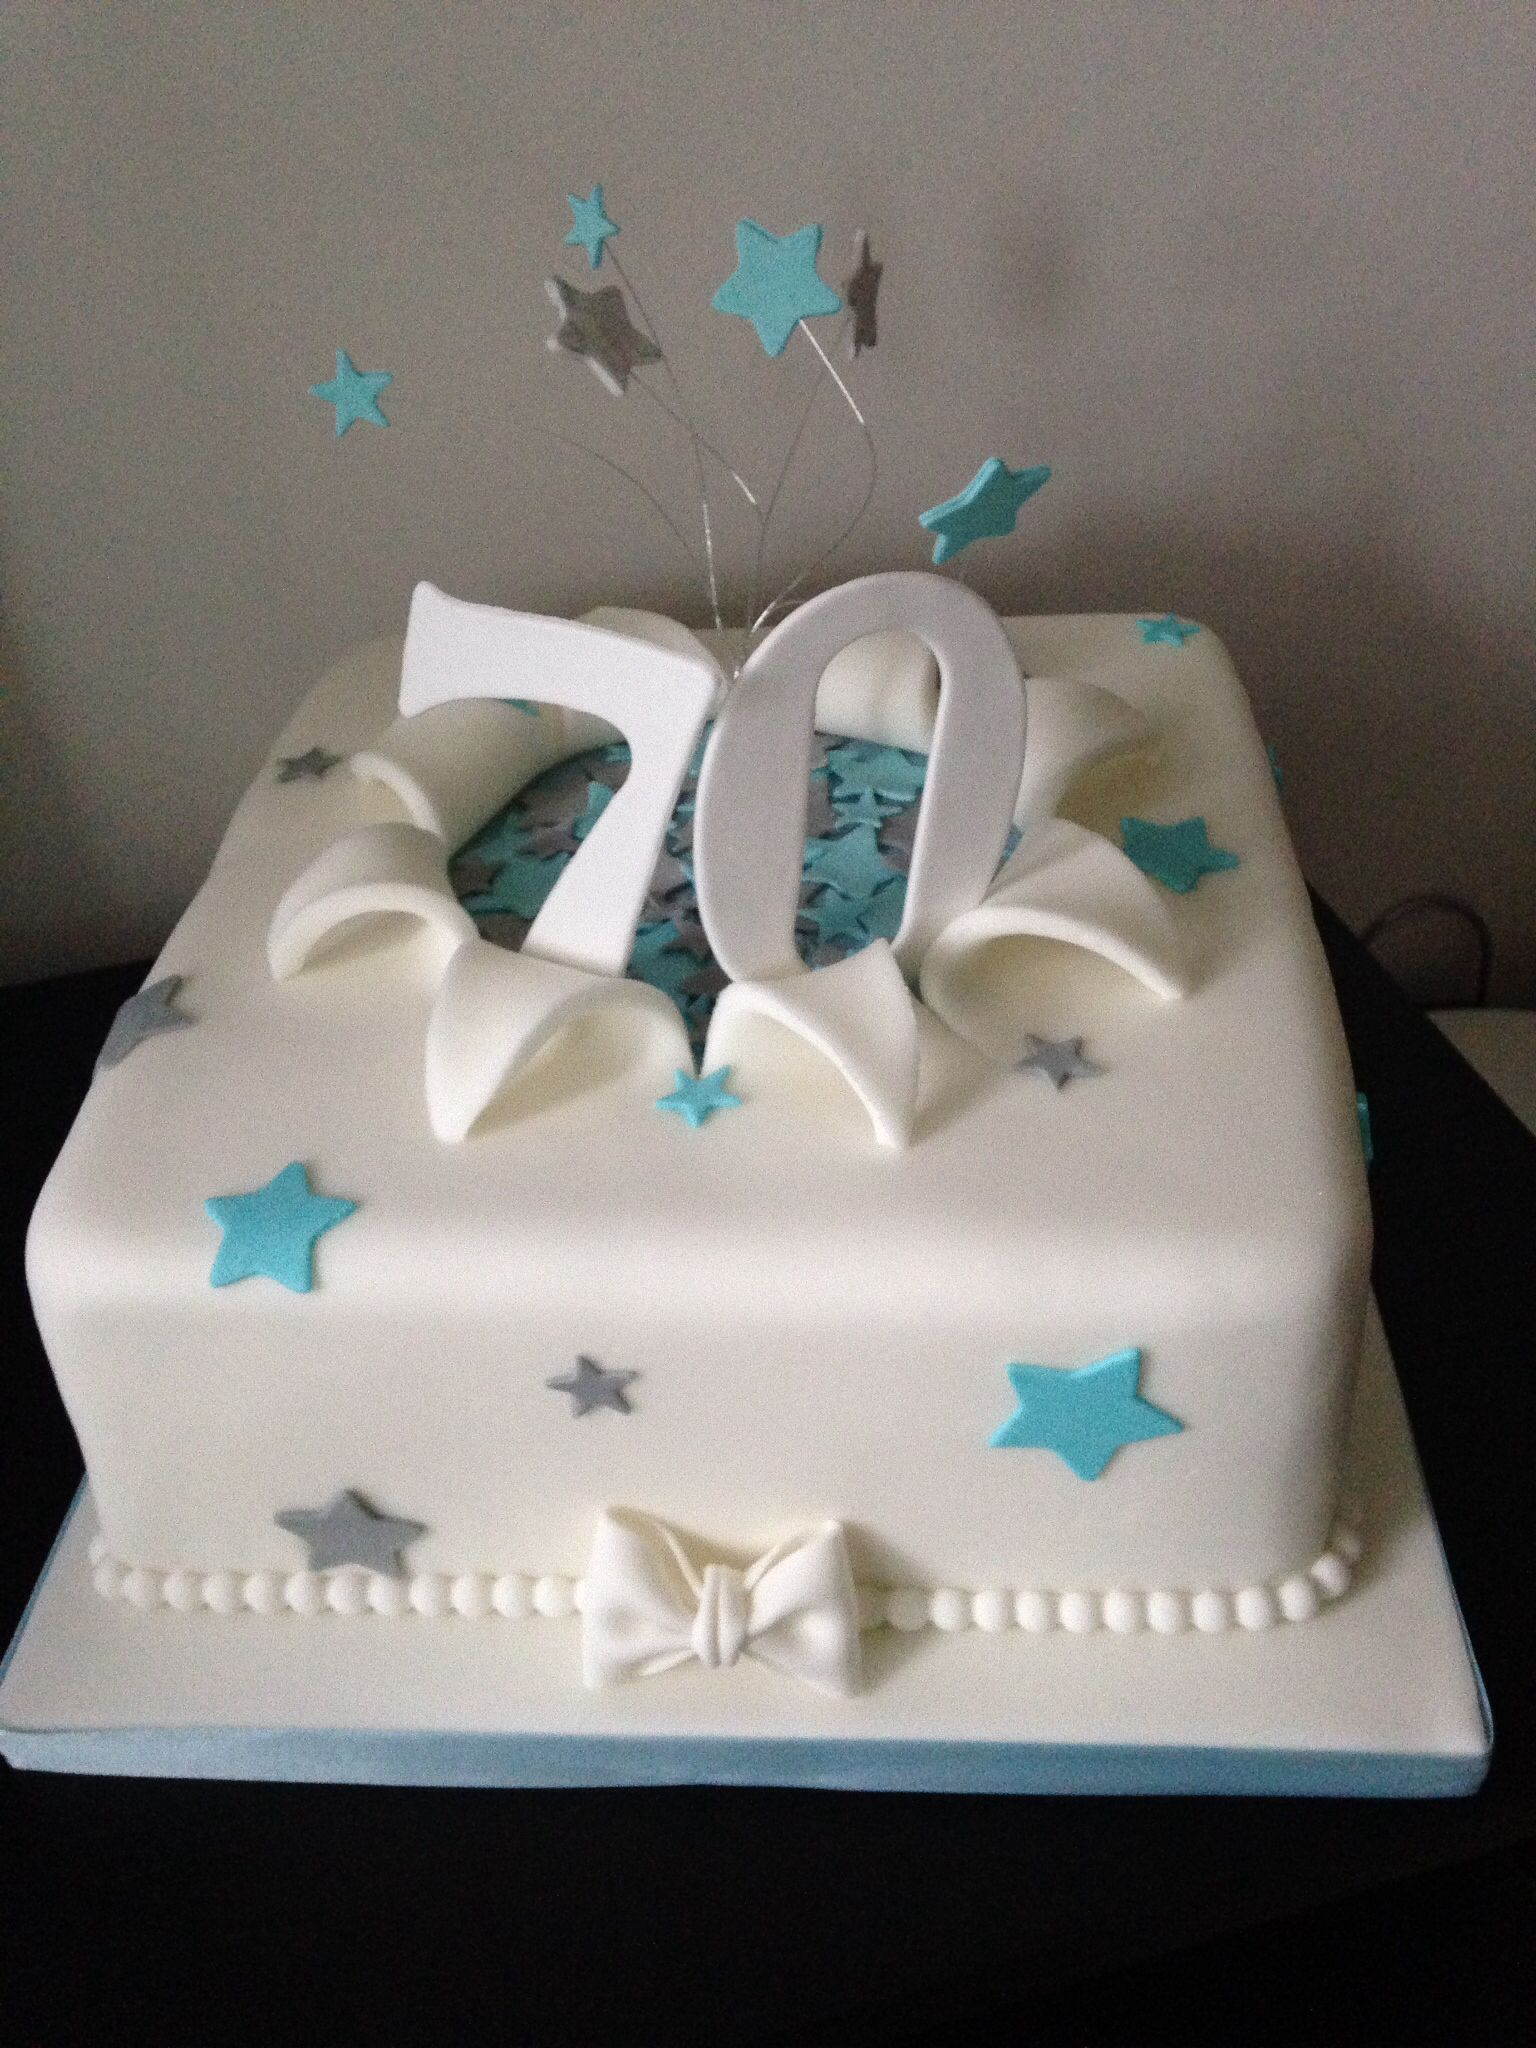 70th Birthday Cake In Turquoise And Silver With Images 70th